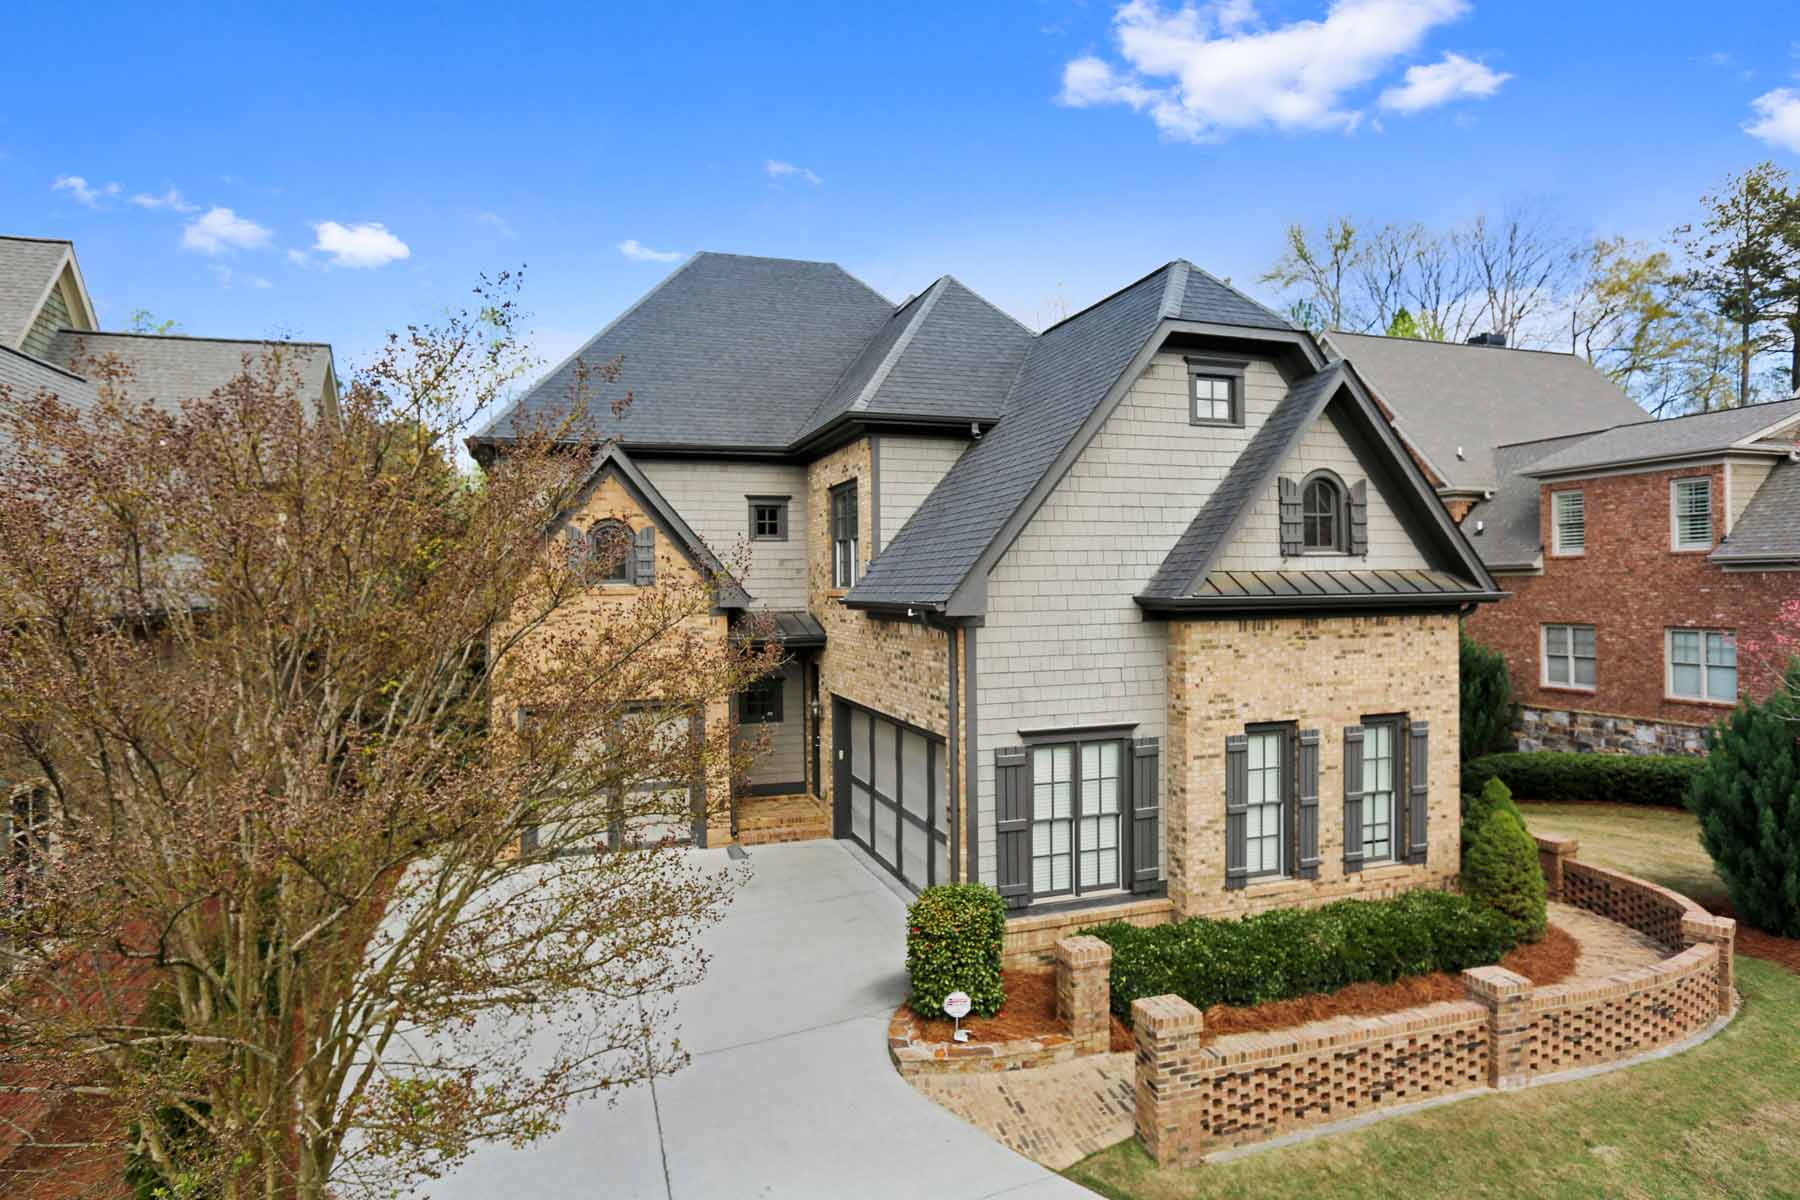 Single Family Home for Sale at Stunning Home in Gated Community 5206 Creek Walk Circle Peachtree Corners, Georgia, 30092 United States